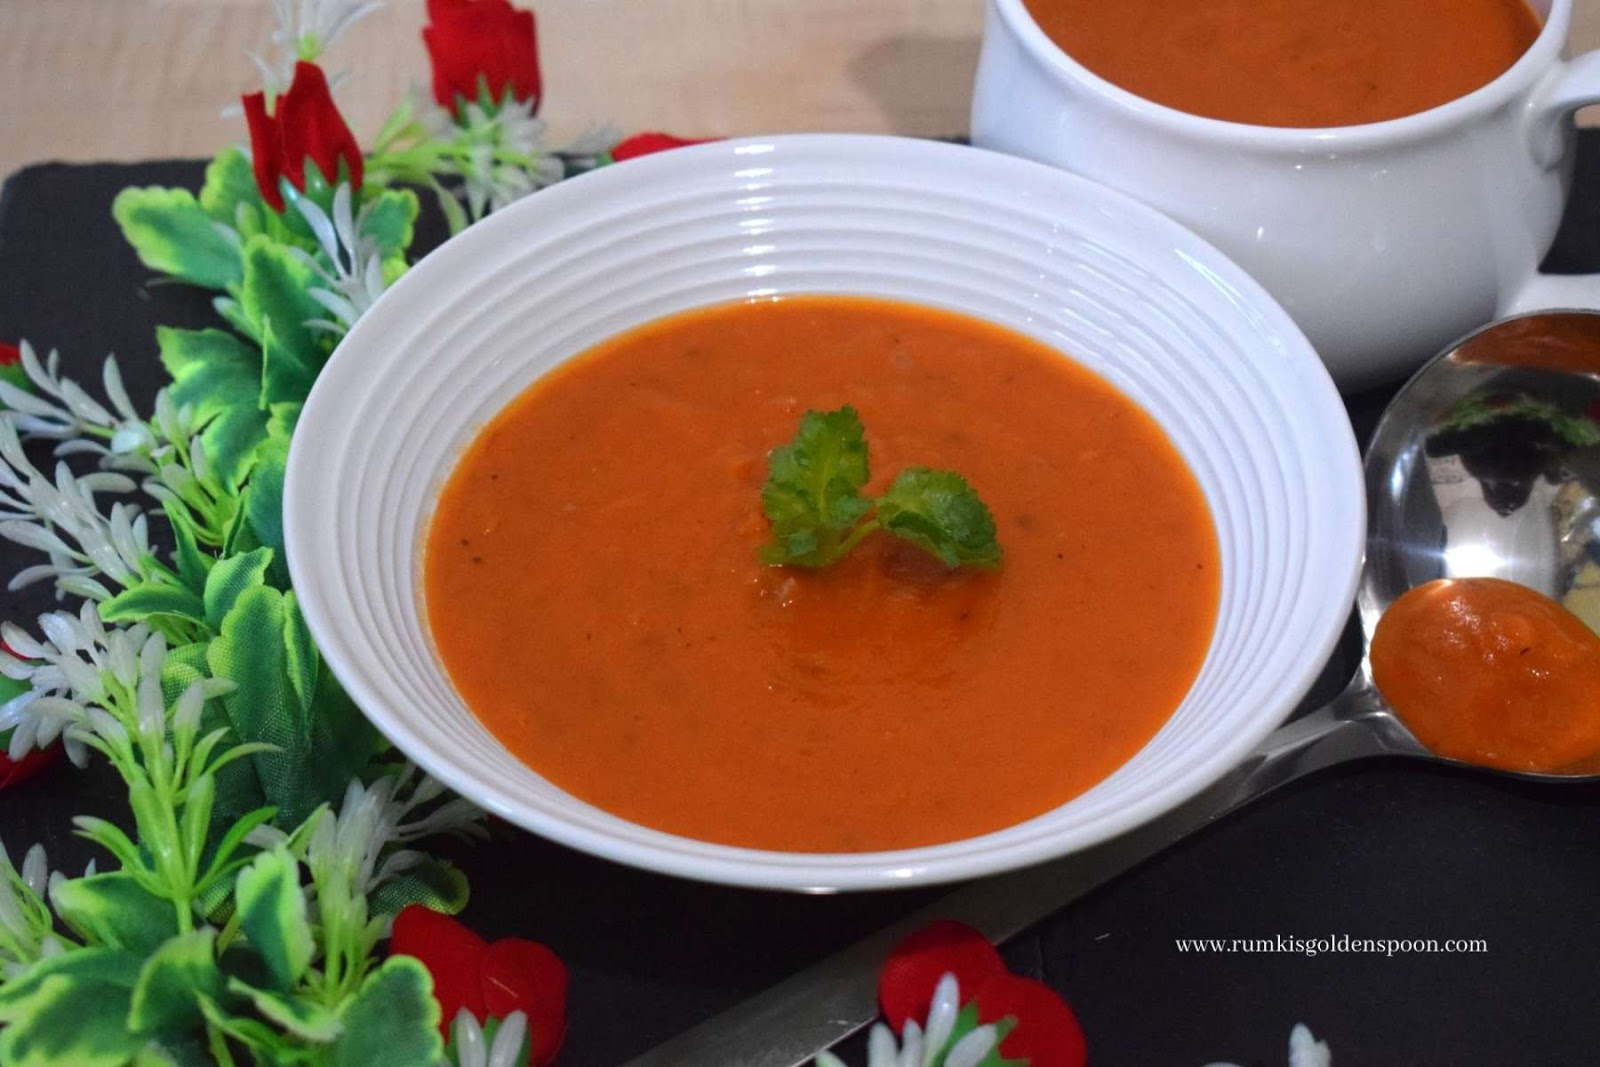 roasted red pepper and tomato soup, spicy roasted red pepper and tomato soup recipe, recipe for roasted red pepper and tomato soup, roasted red pepper and tomato soup recipe, roasted tomato and red pepper soup recipe, roasted tomato and red pepper soup, soup recipe, soup recipes, soup recipe tomato, Rumki's Golden Spoon